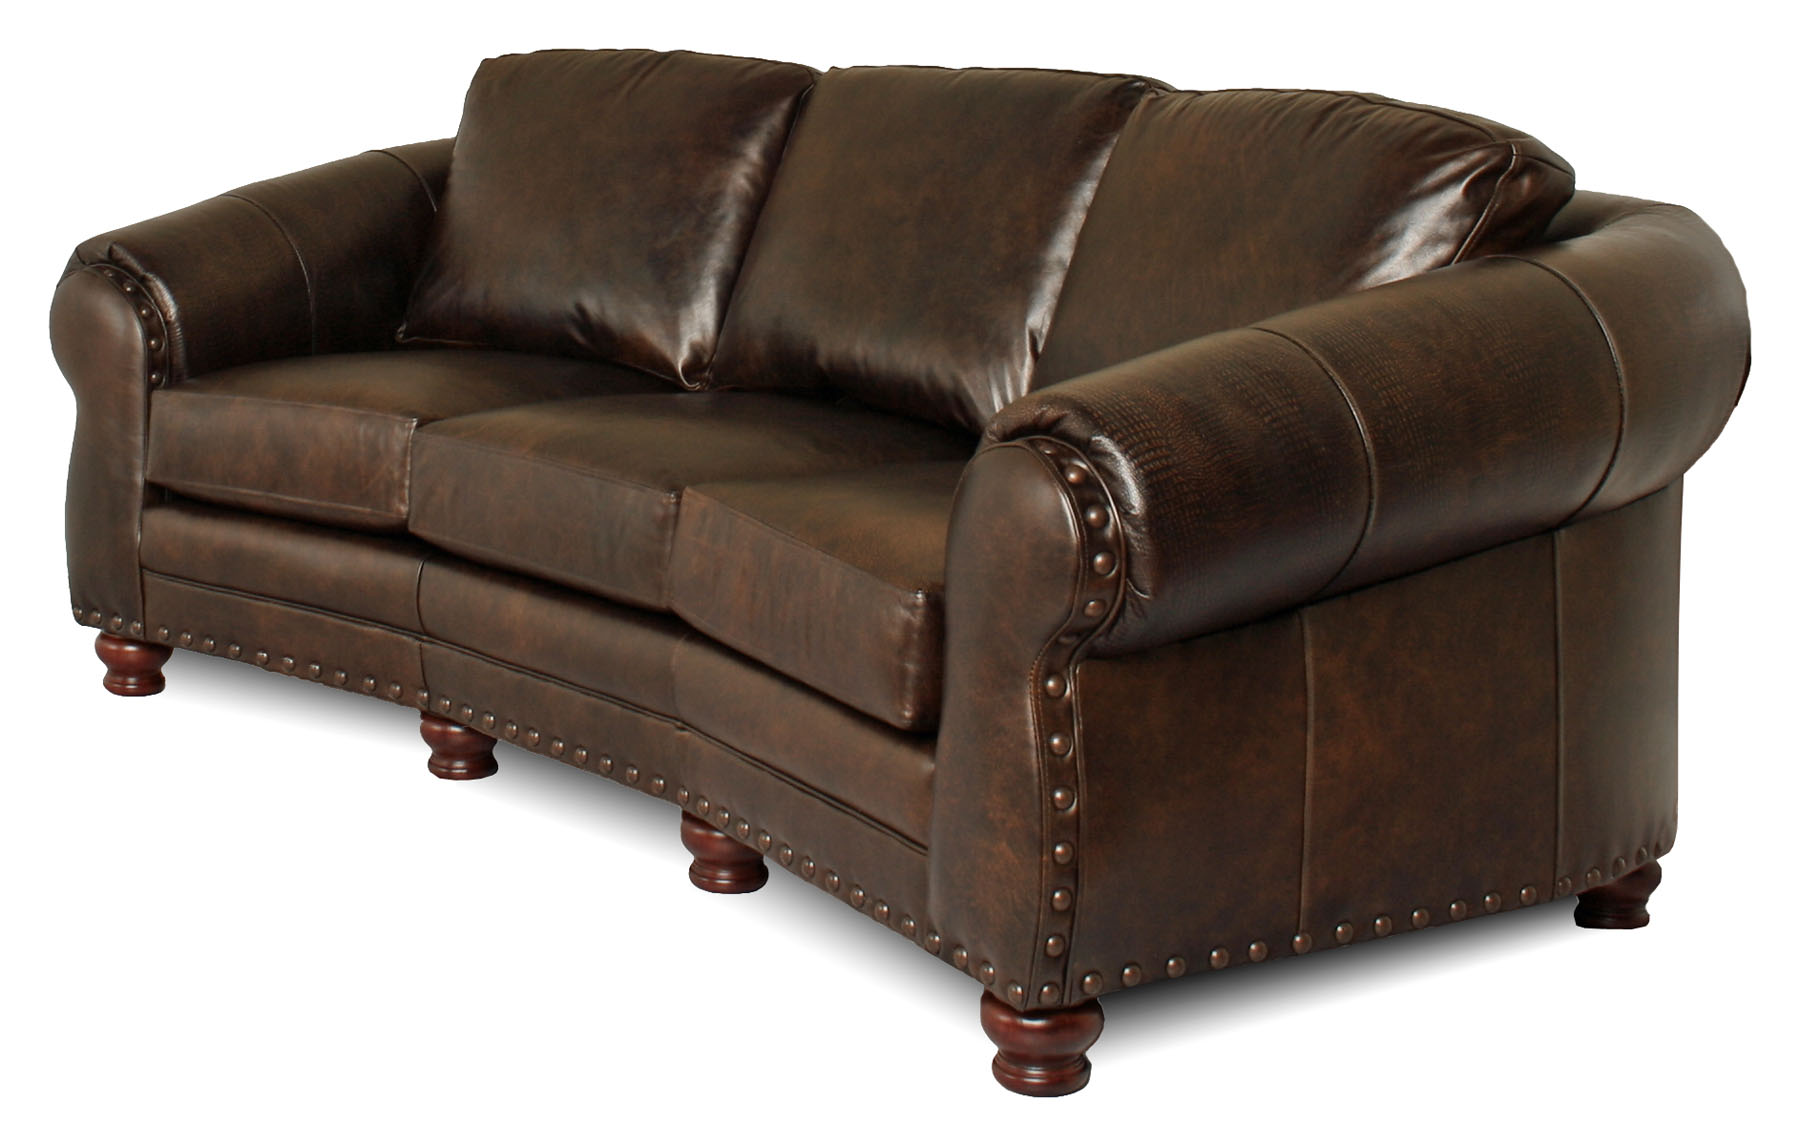 Dahlonega Leather Furniture